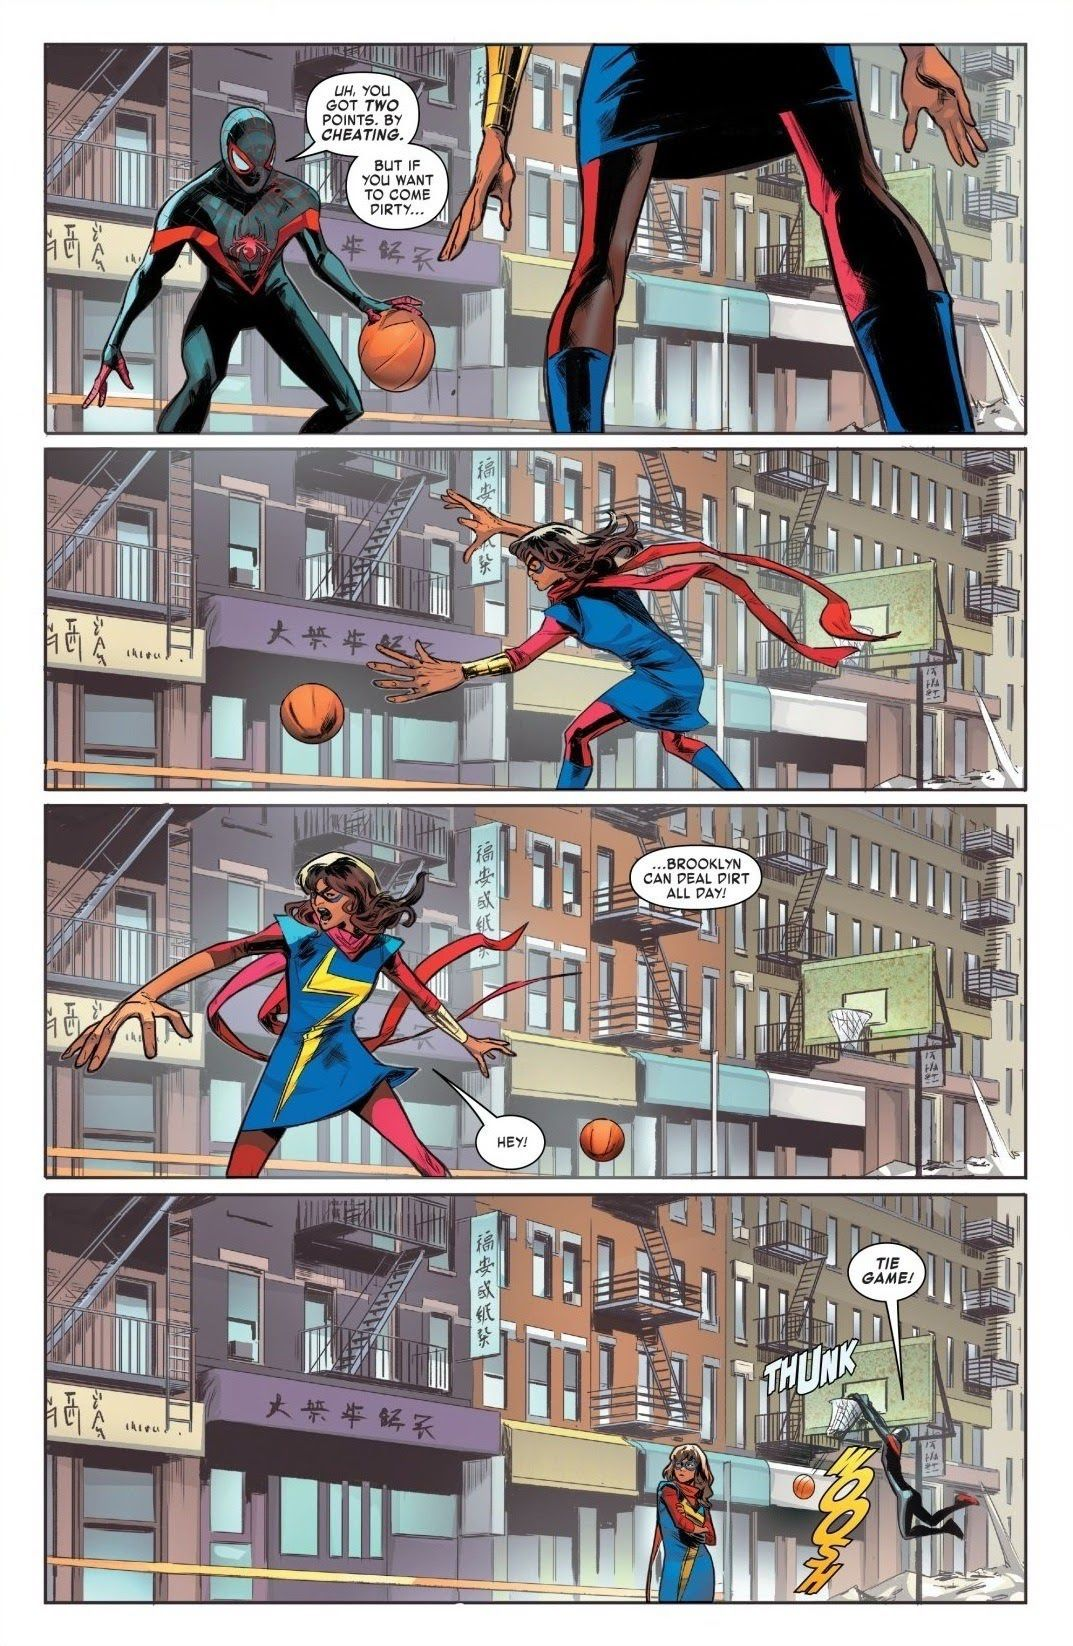 """Miles Morales/Spider-Man and Kamala Khan/Ms. Marvel play basketball. """"You got two points by cheating. But if you want to come dirty,"""" Miles says before turning invisible to dunk a basket, """"Brooklyn can deal dirt all day!"""" in Miles Morales: Spider-Man #24, Marvel Comics (2021)."""